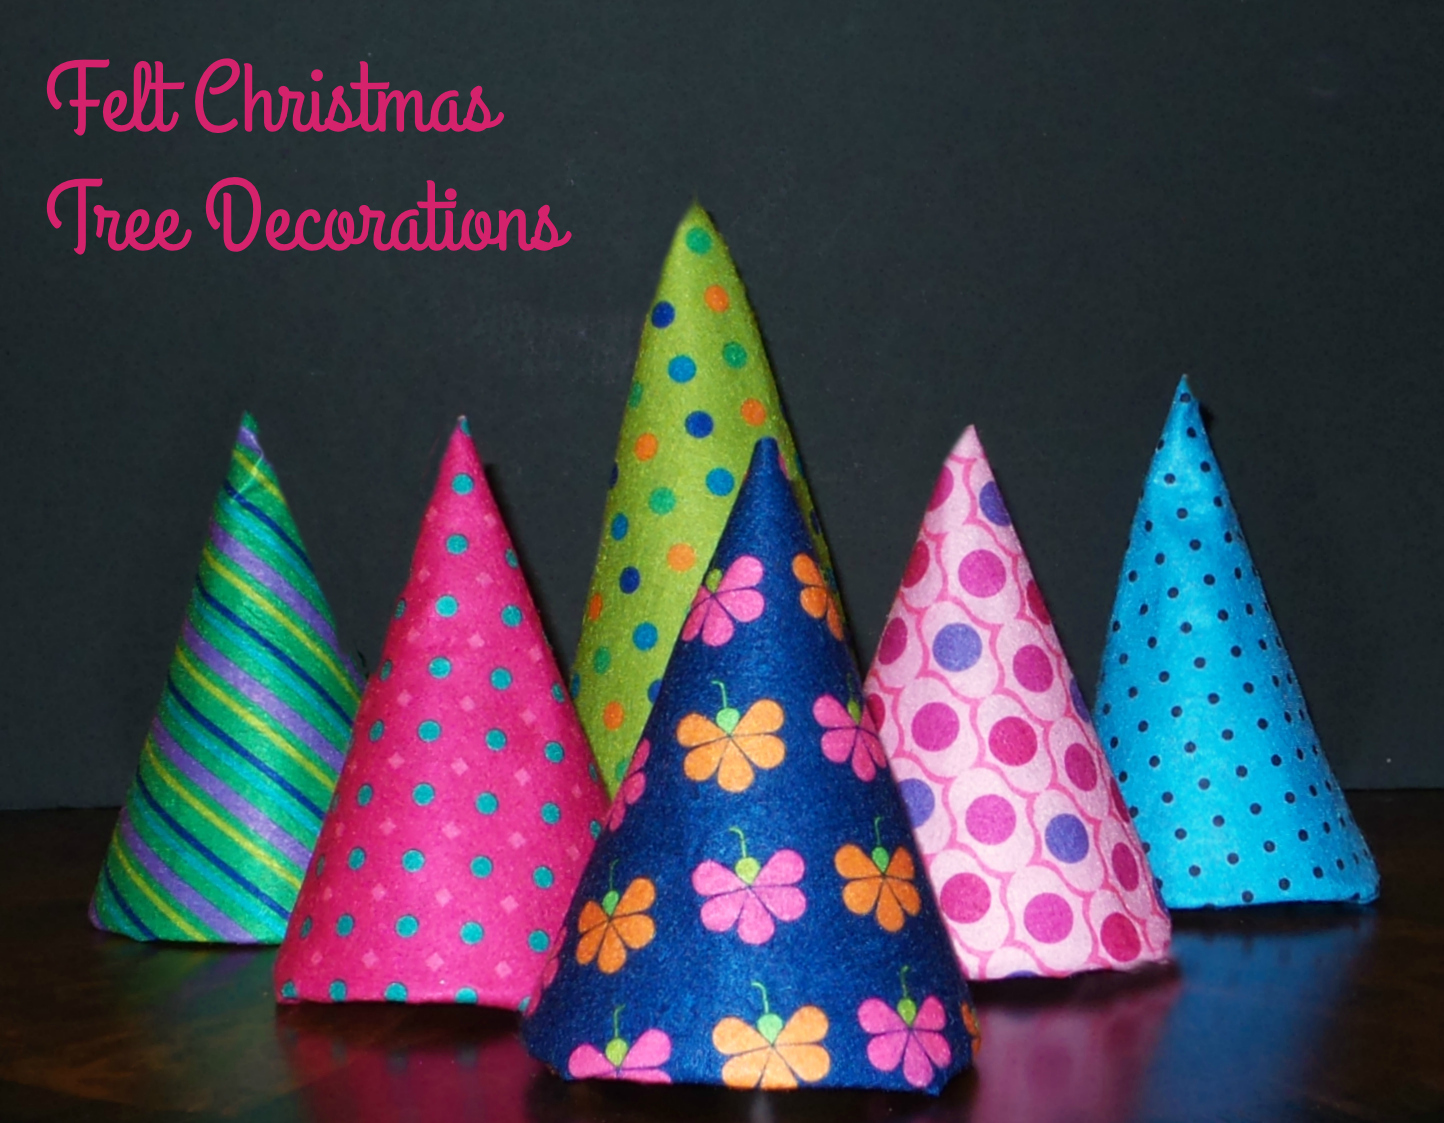 final-felt-christmas-tree-decorations with font